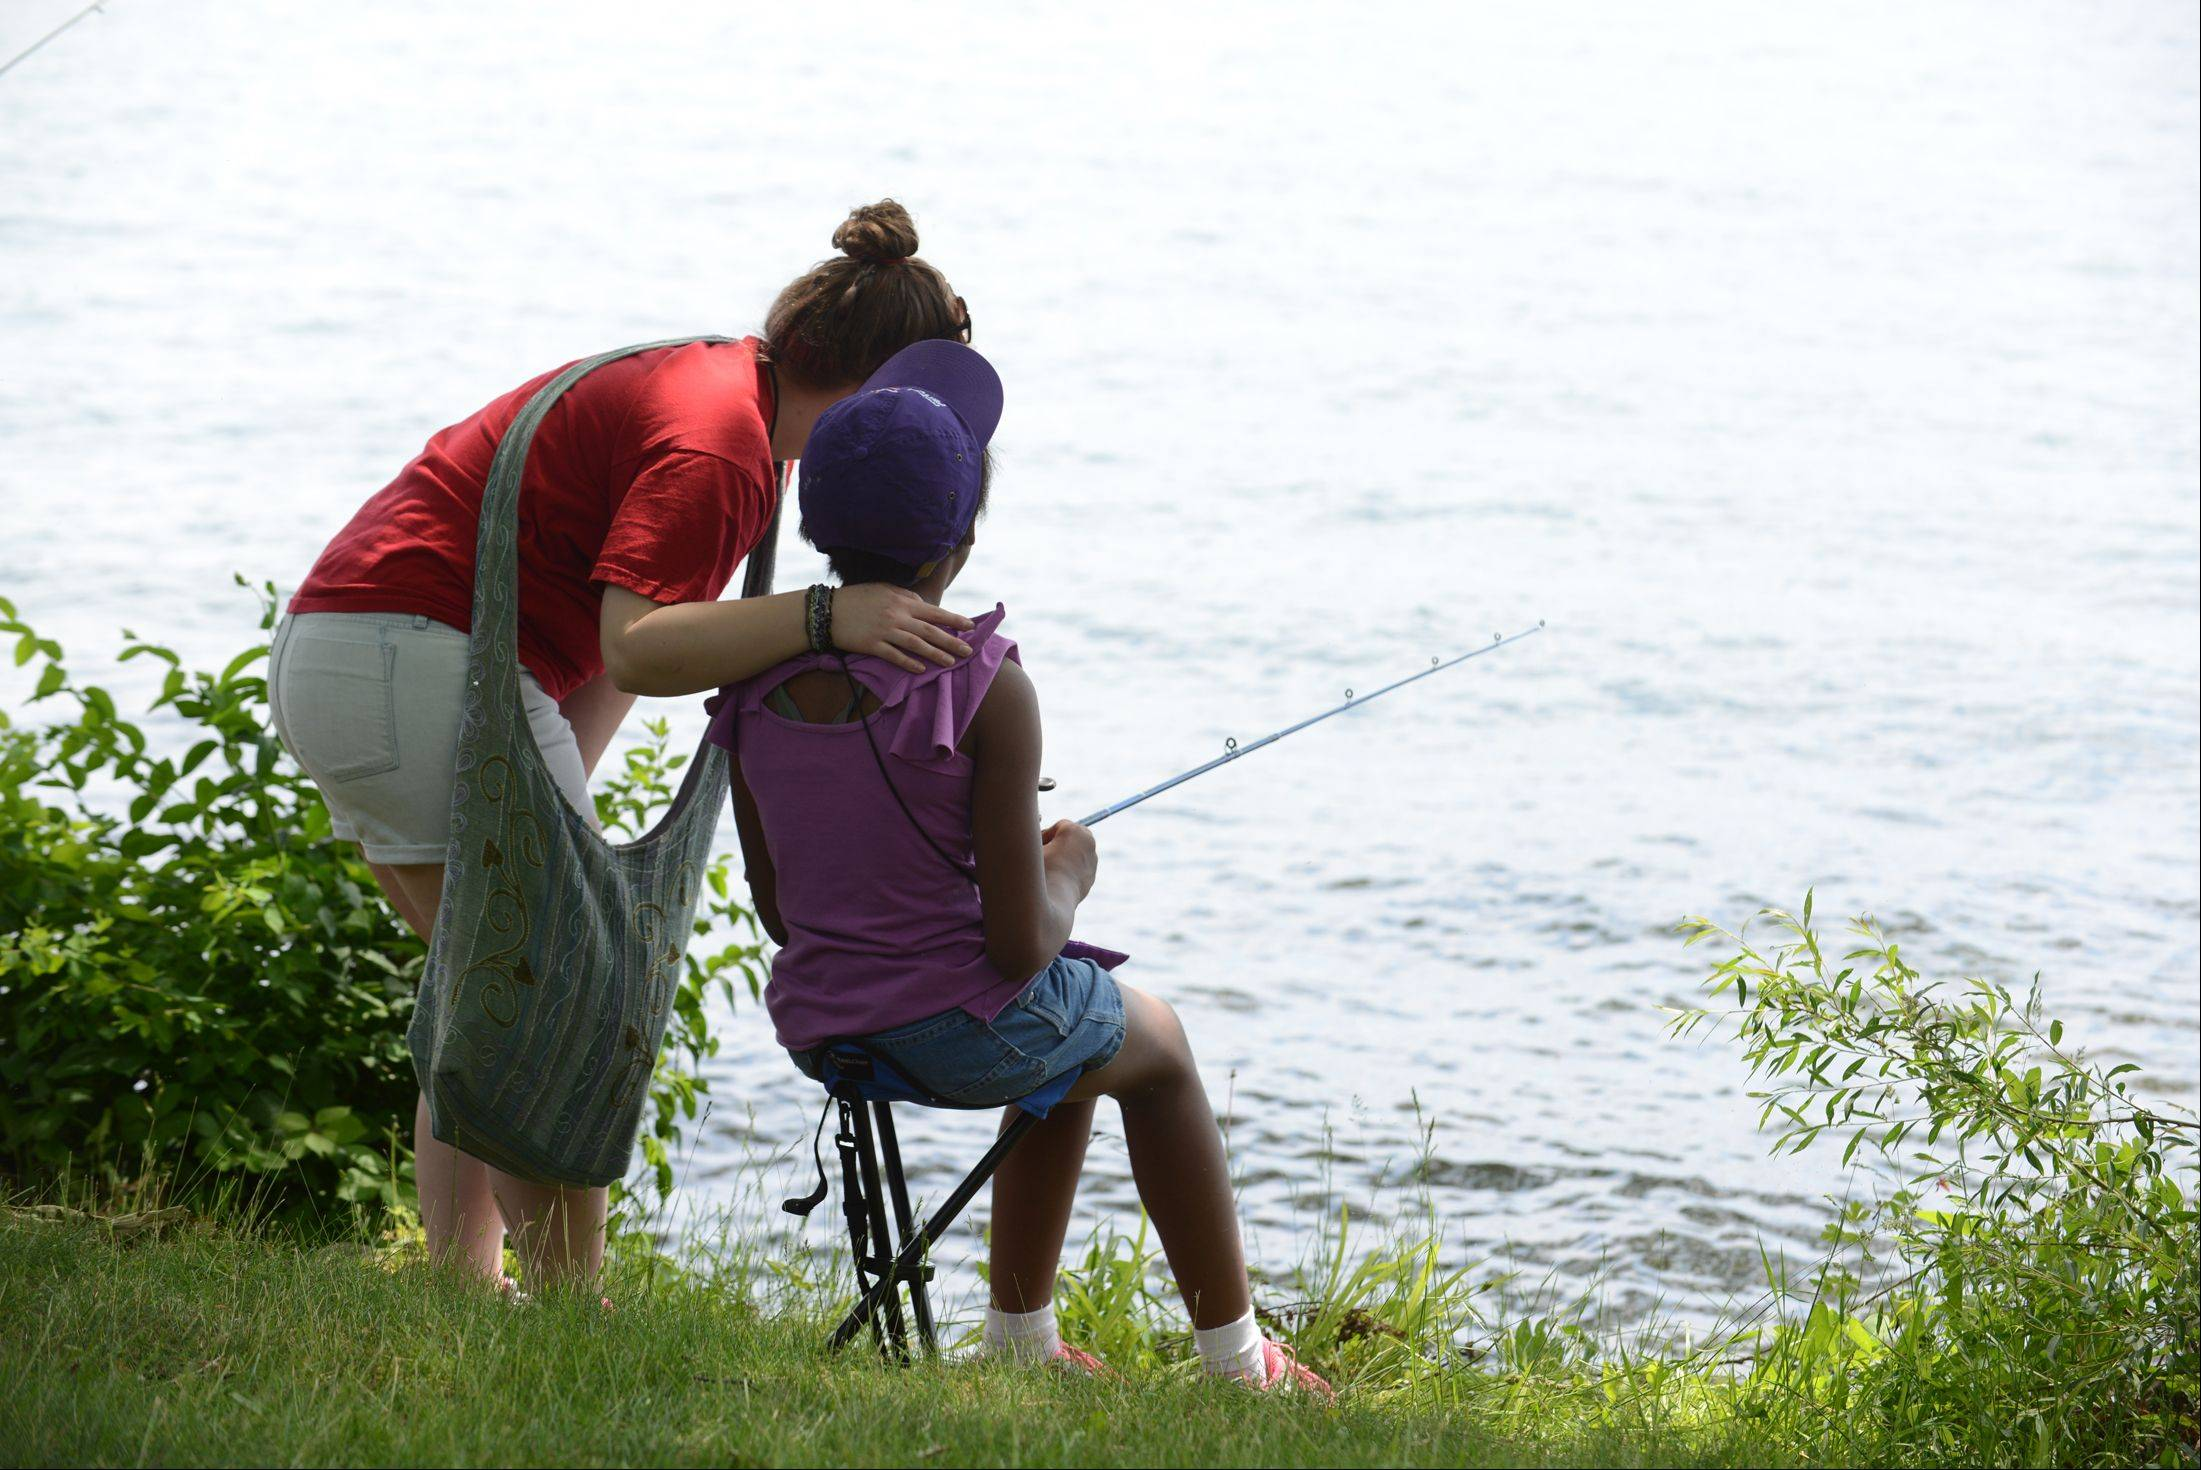 Royal Family Kids Camp counselor Amber Blaskoski of St. Charles fishes with a camper at the Wisconsin camp.